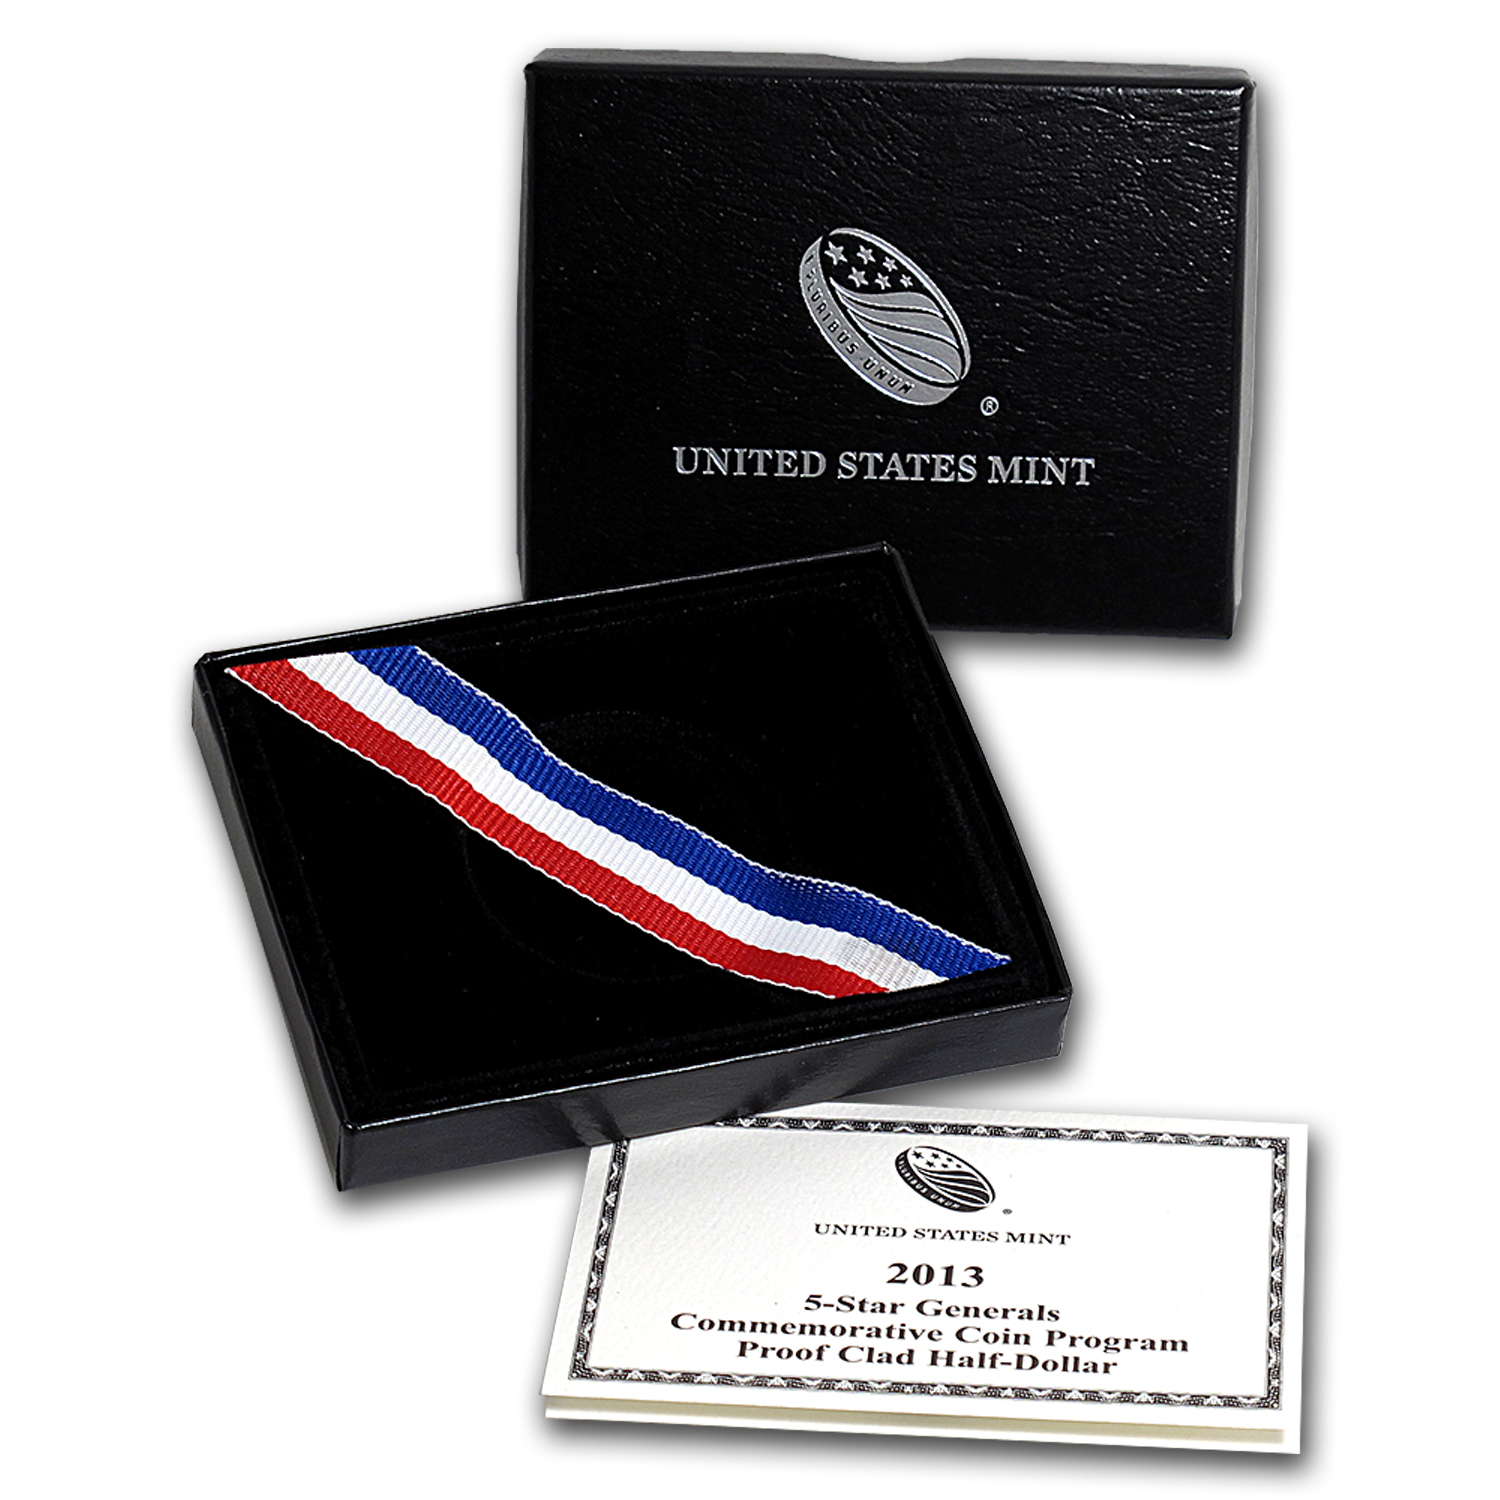 OGP Box & COA - 2013 U.S. Mint 5 Star General Clad Proof Coin